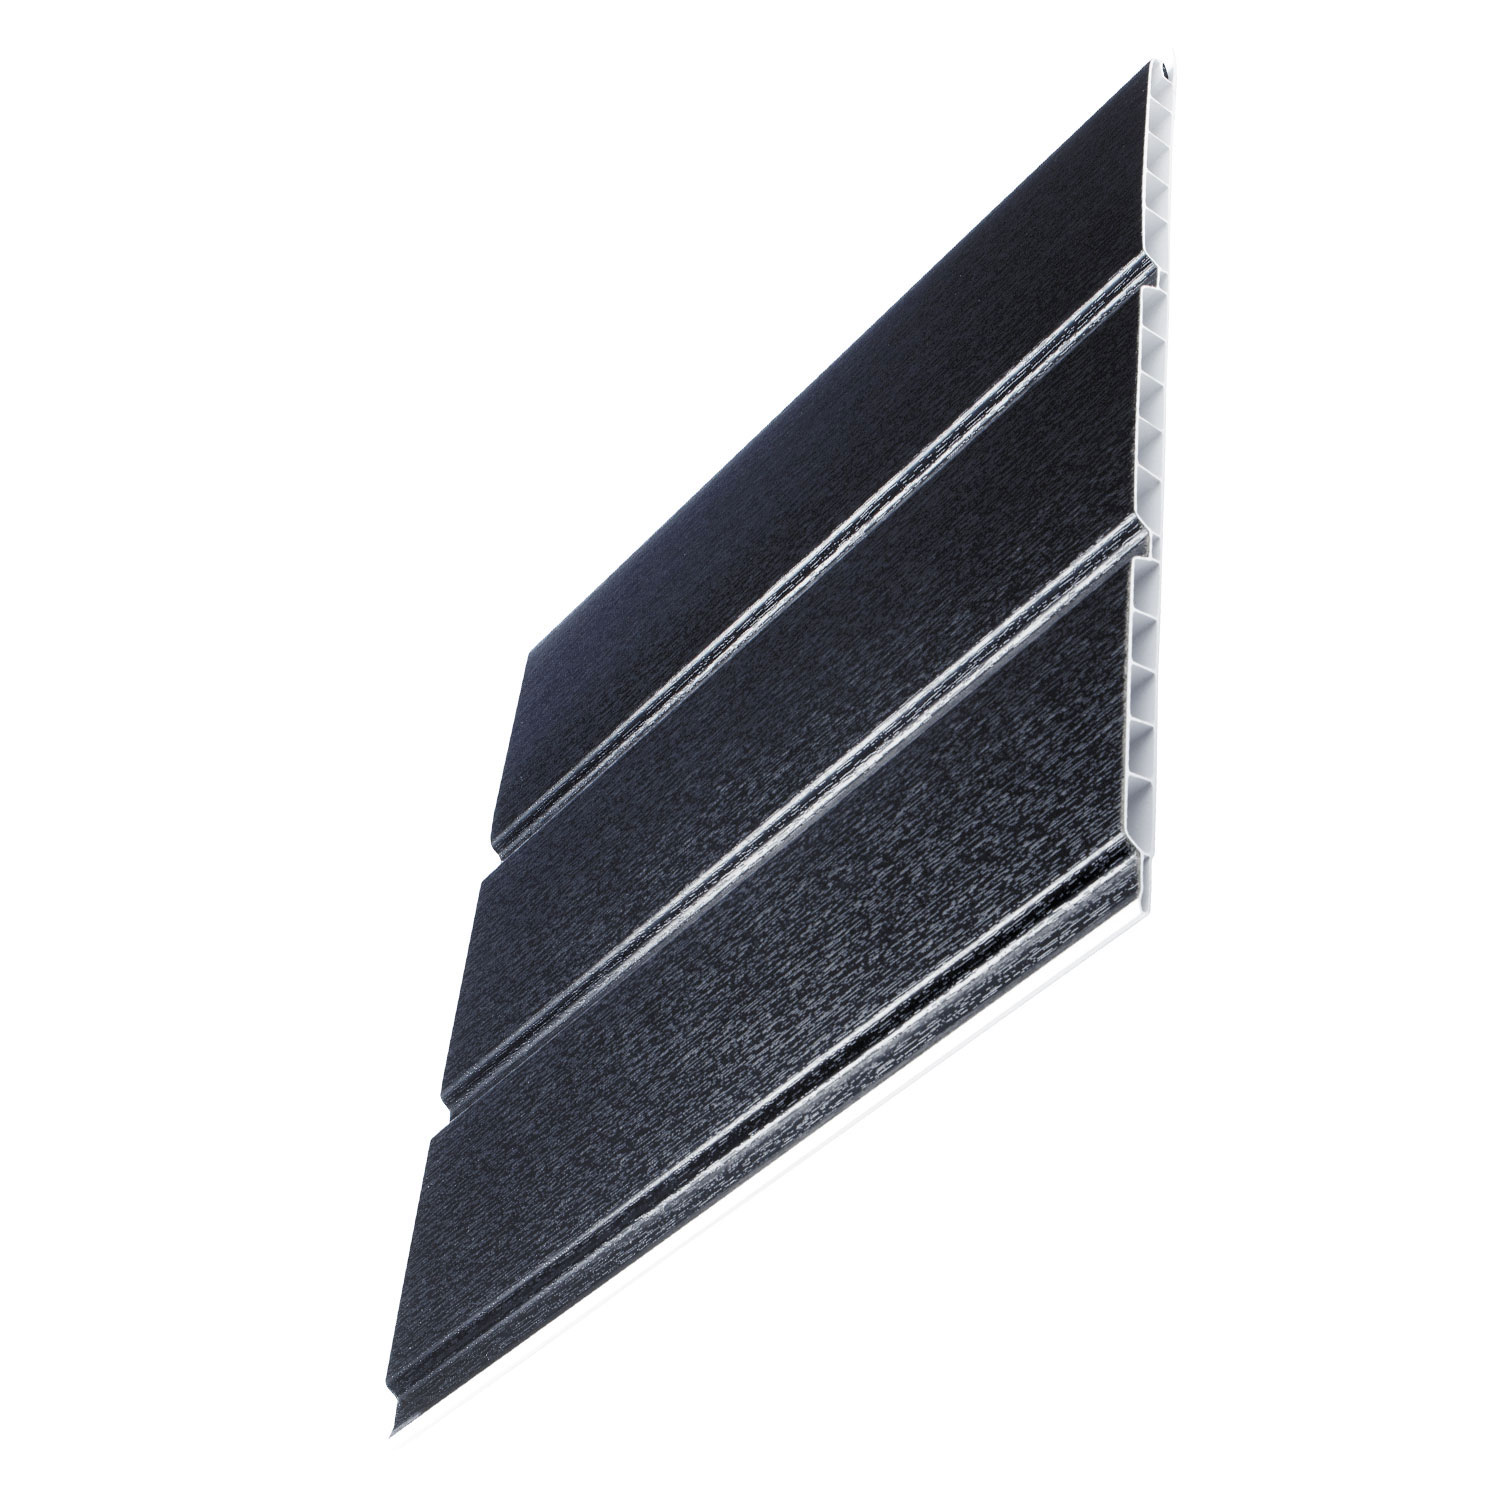 Anthracite Grey Woodgrain Hollow Soffit Boards